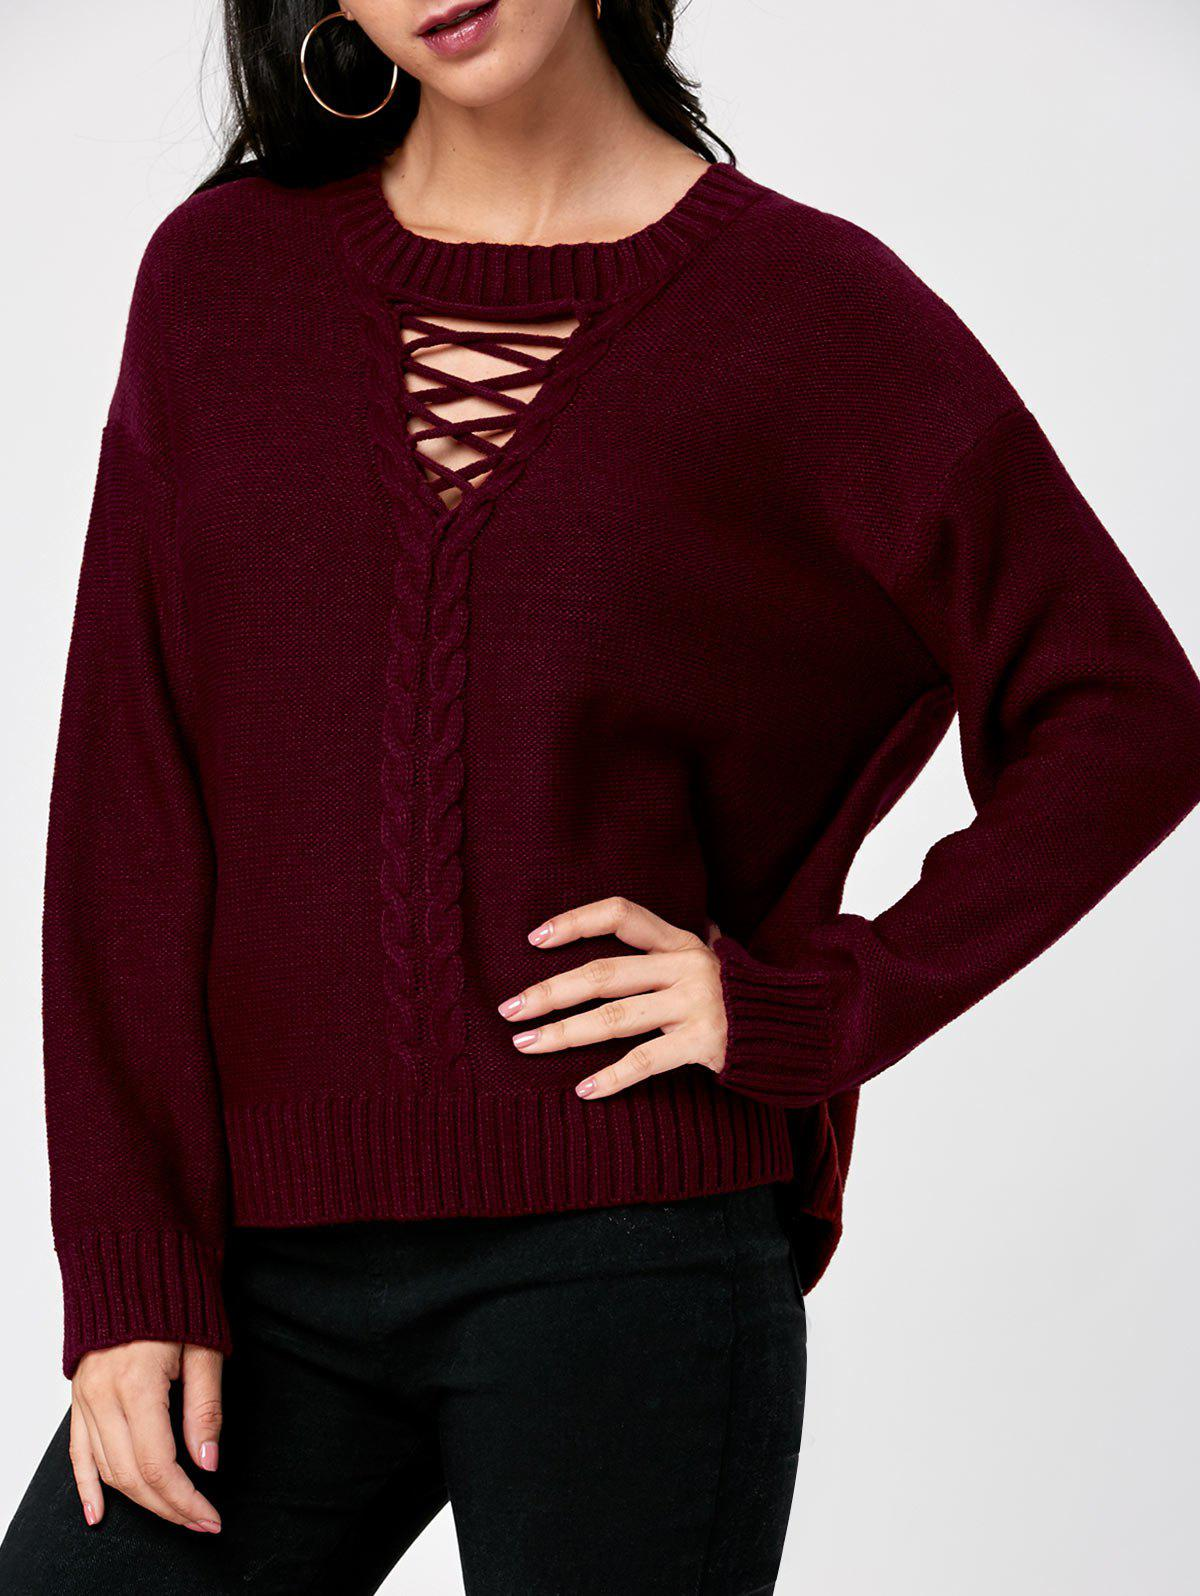 New Keyhole Neck Cable Knit Sweater